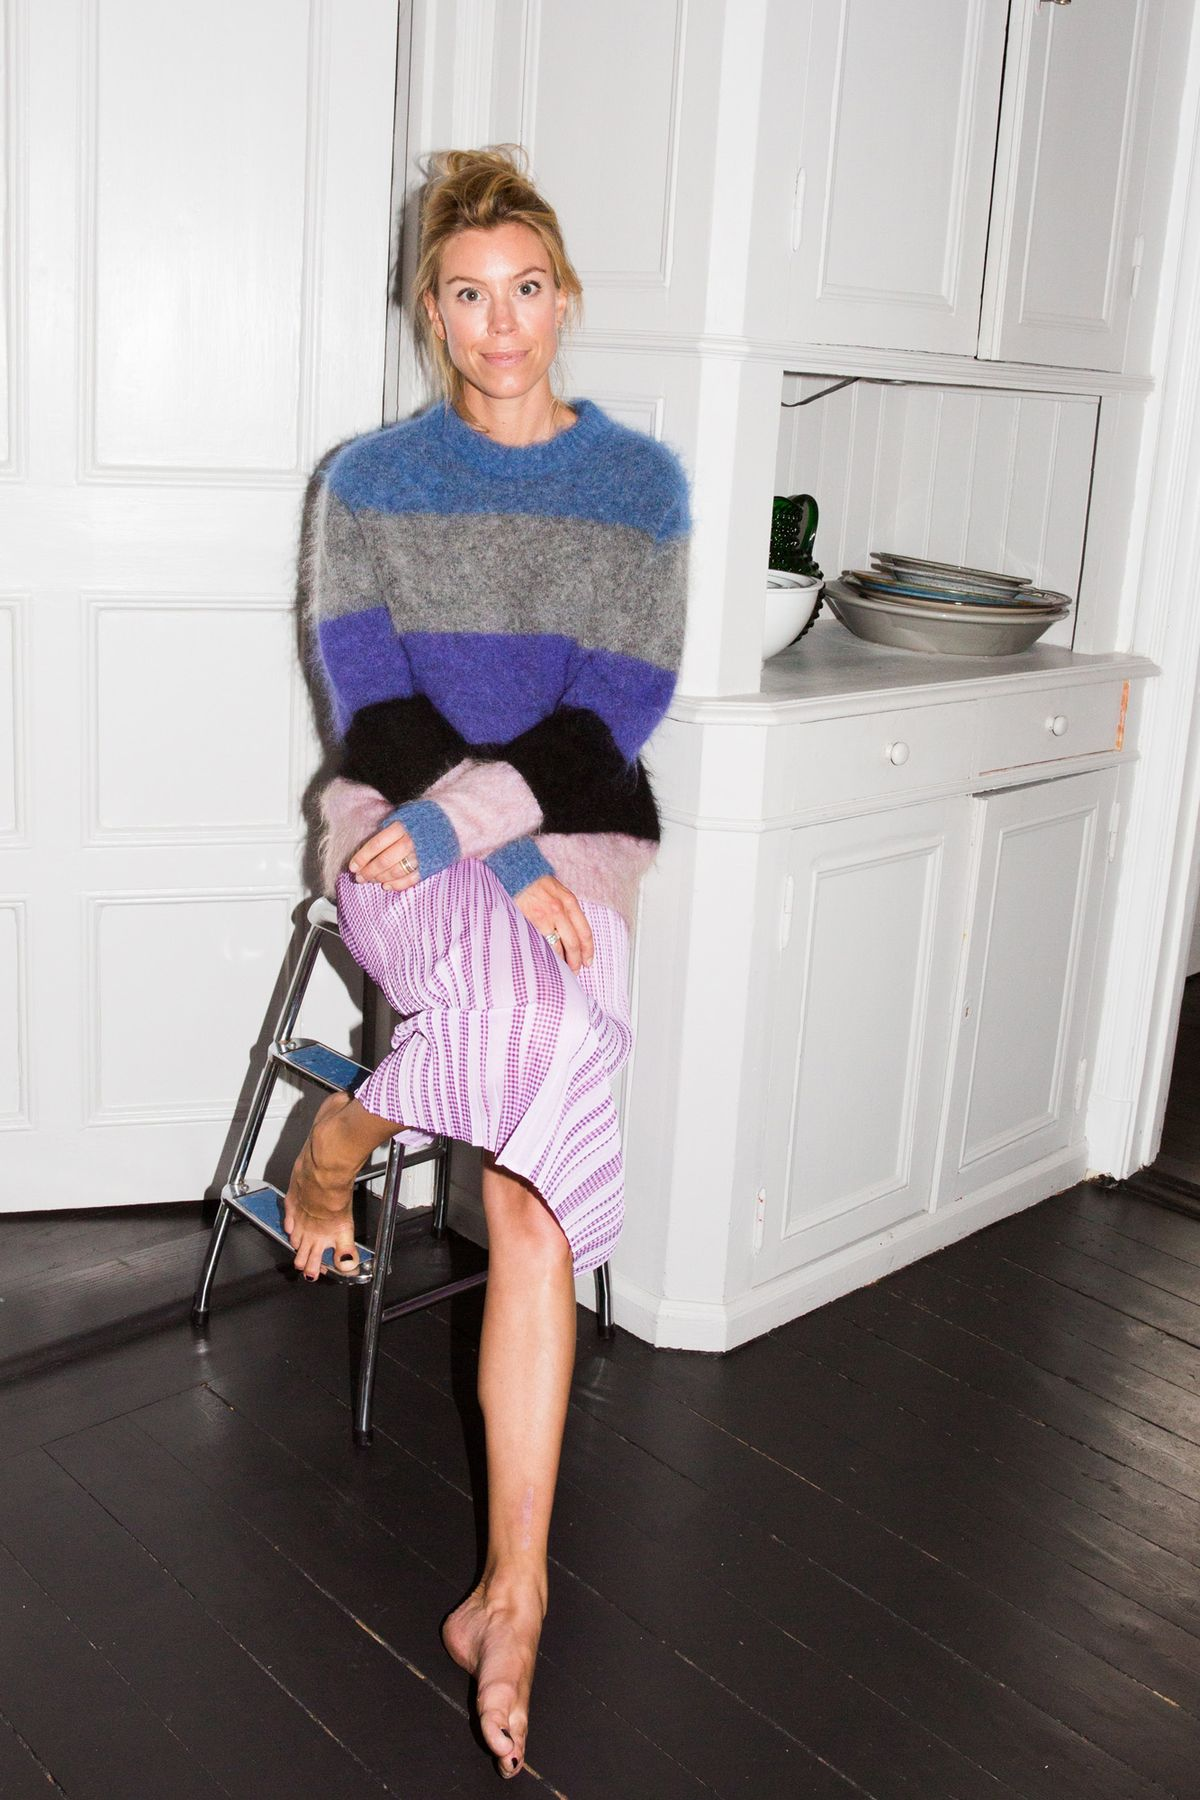 How to Master Scandinavian Style According to This Cult-Favorite Bag Designer